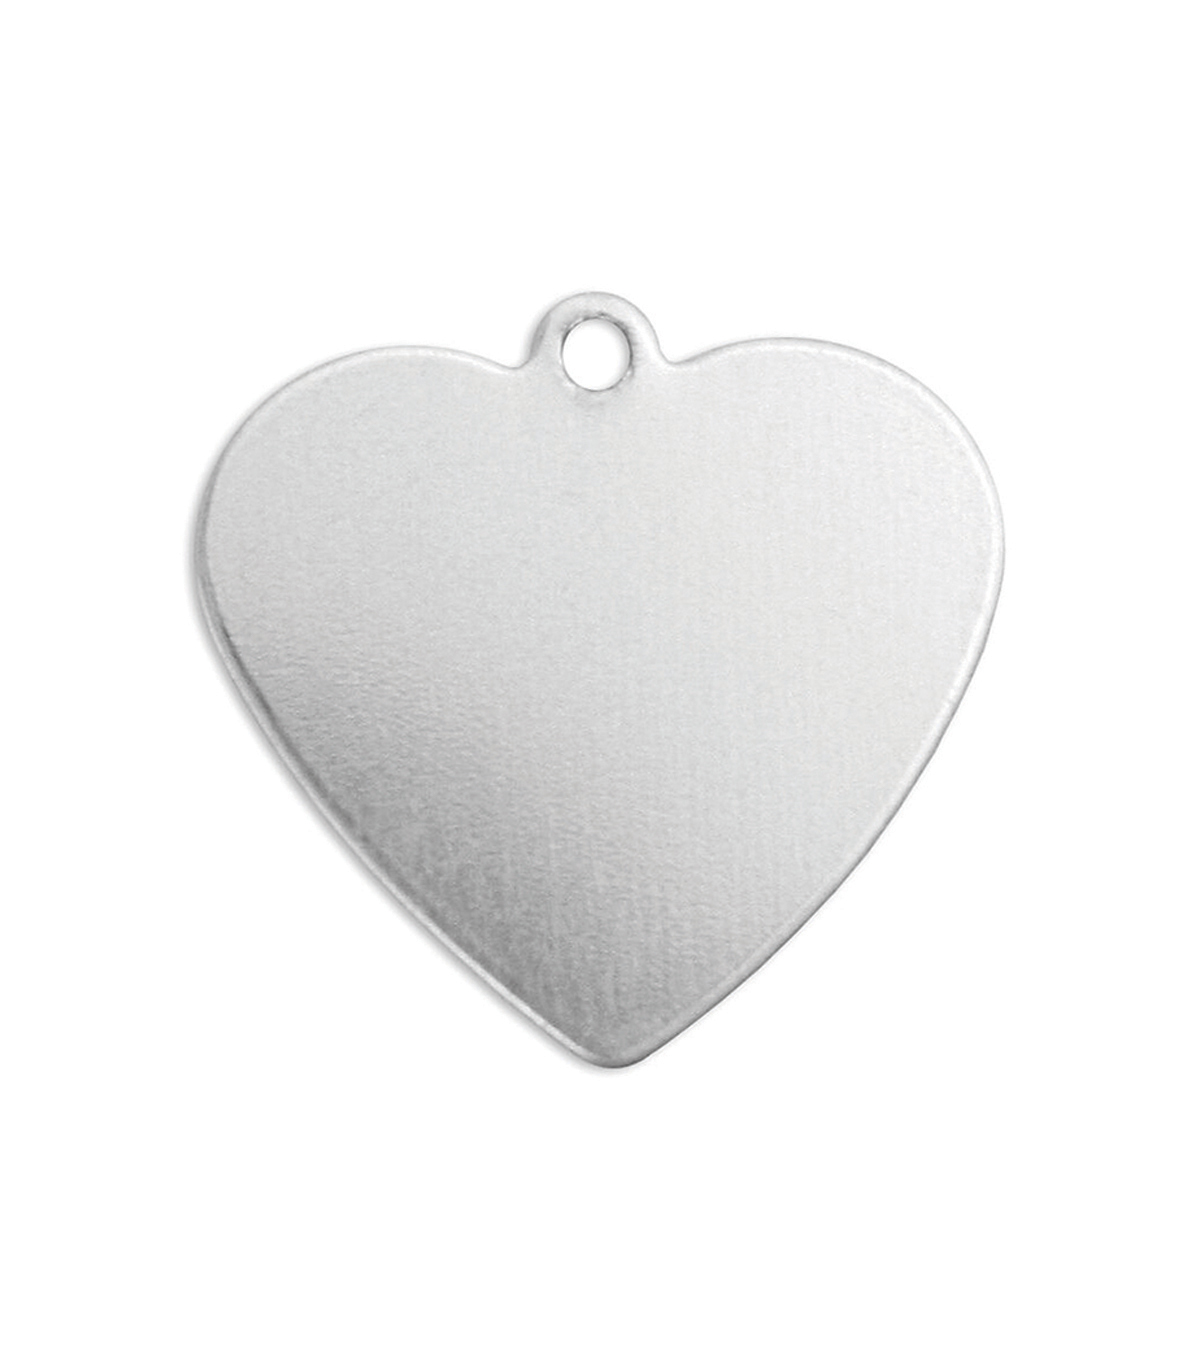 ImpressArt 0.56 oz. Aluminum Heart with Ring Premium Stamping Blanks